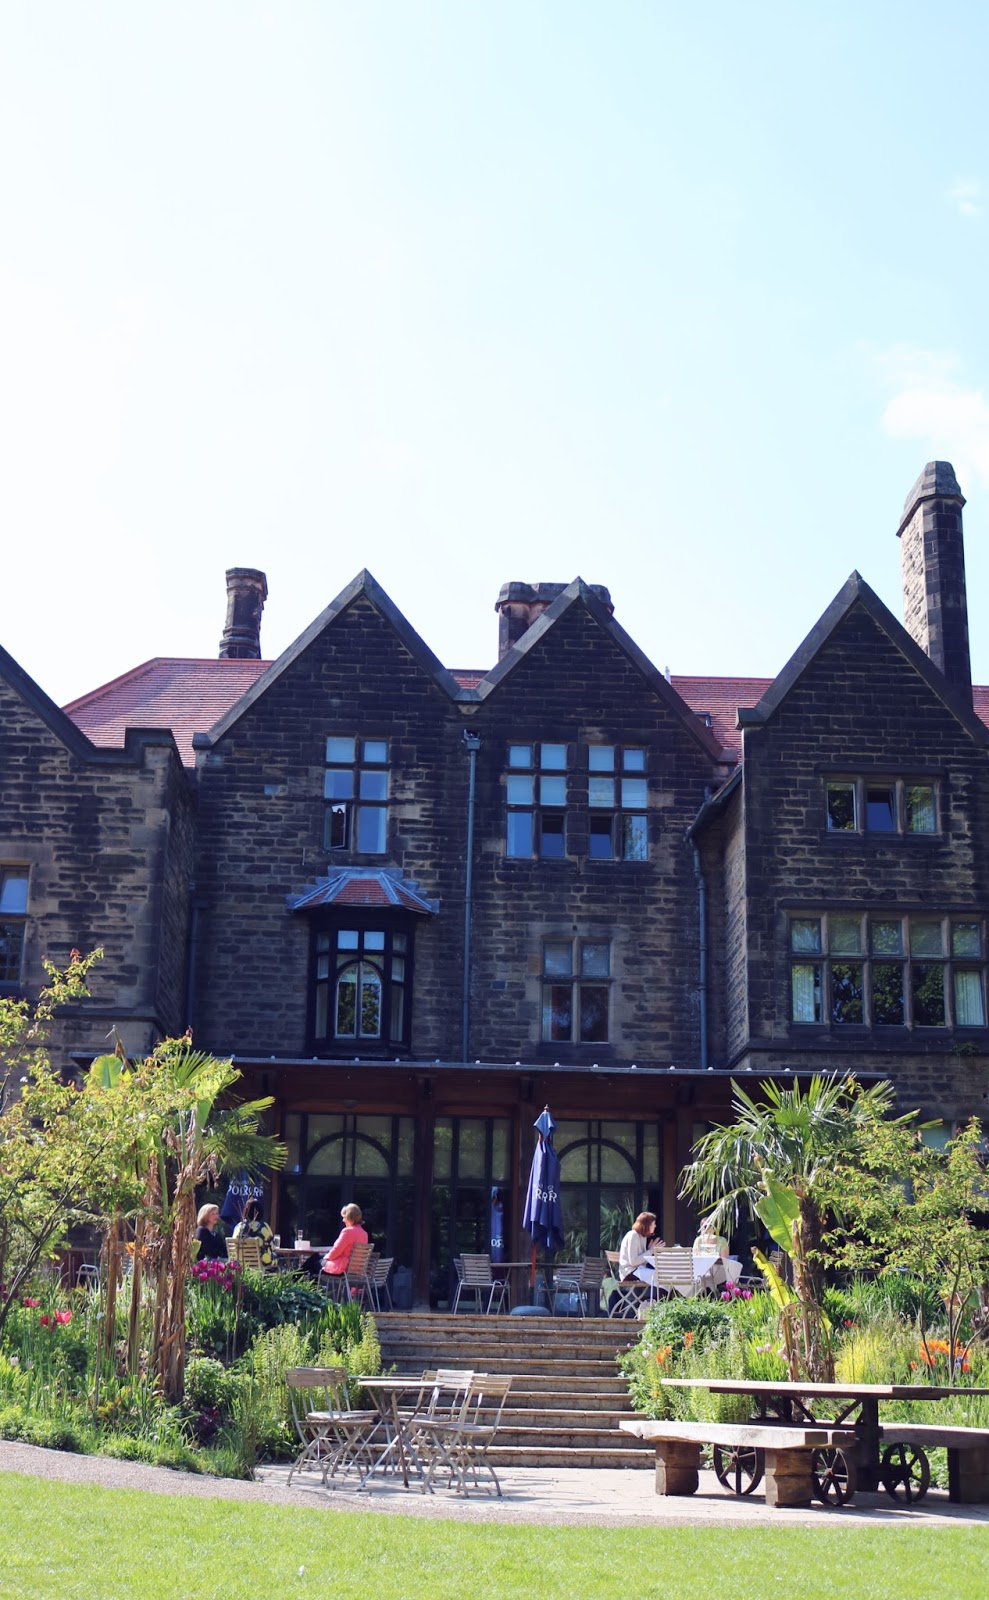 Jesmond Dene House, Newcastle.